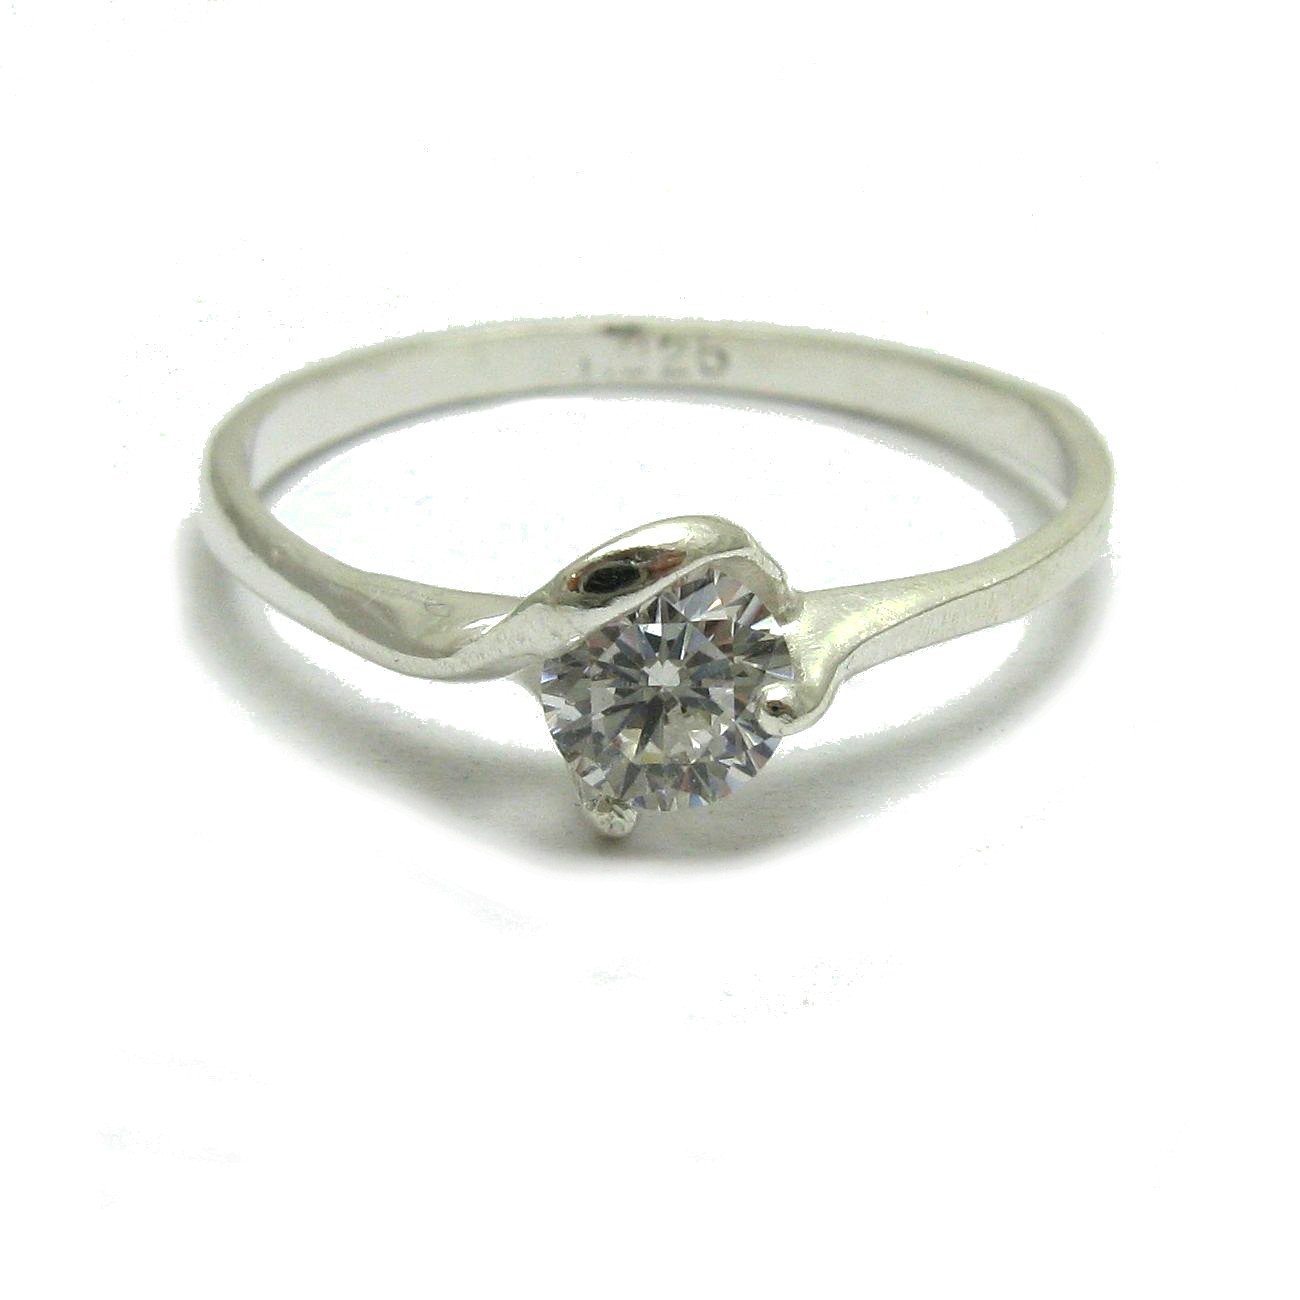 Silver ring - R001764